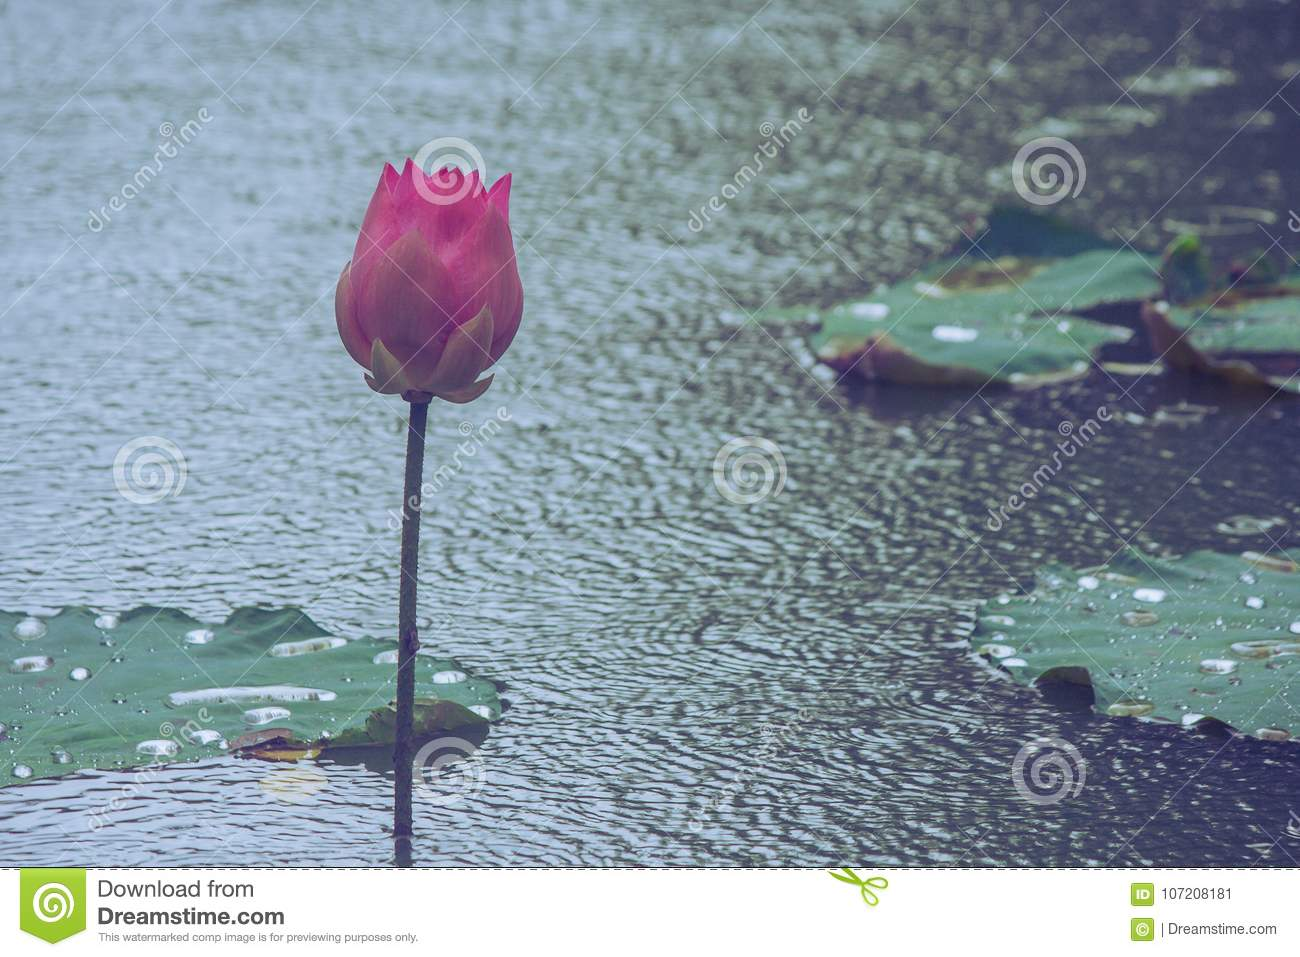 Pink Lotus Flower Poked Through Water In Pond At Public Park In